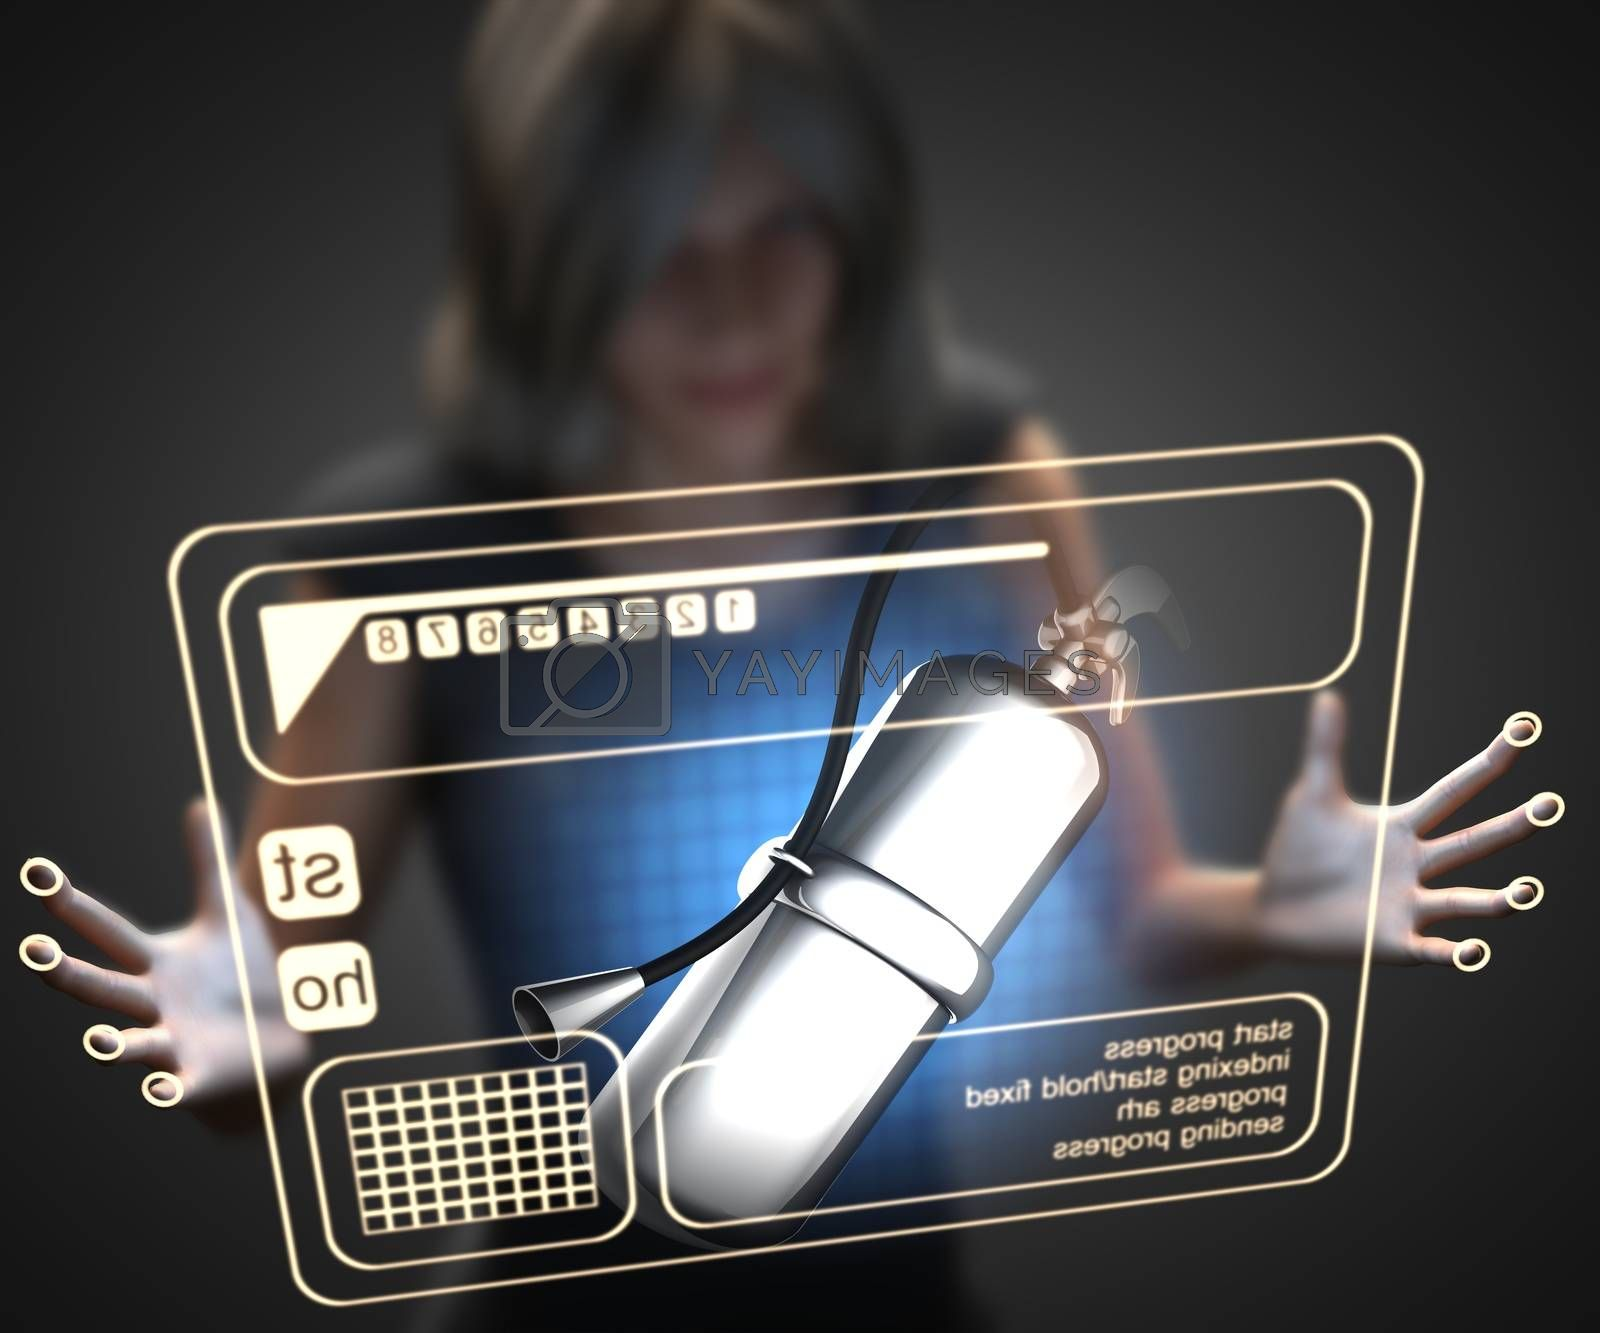 Royalty free image of woman and hologram with fire extinguisher by videodoctor